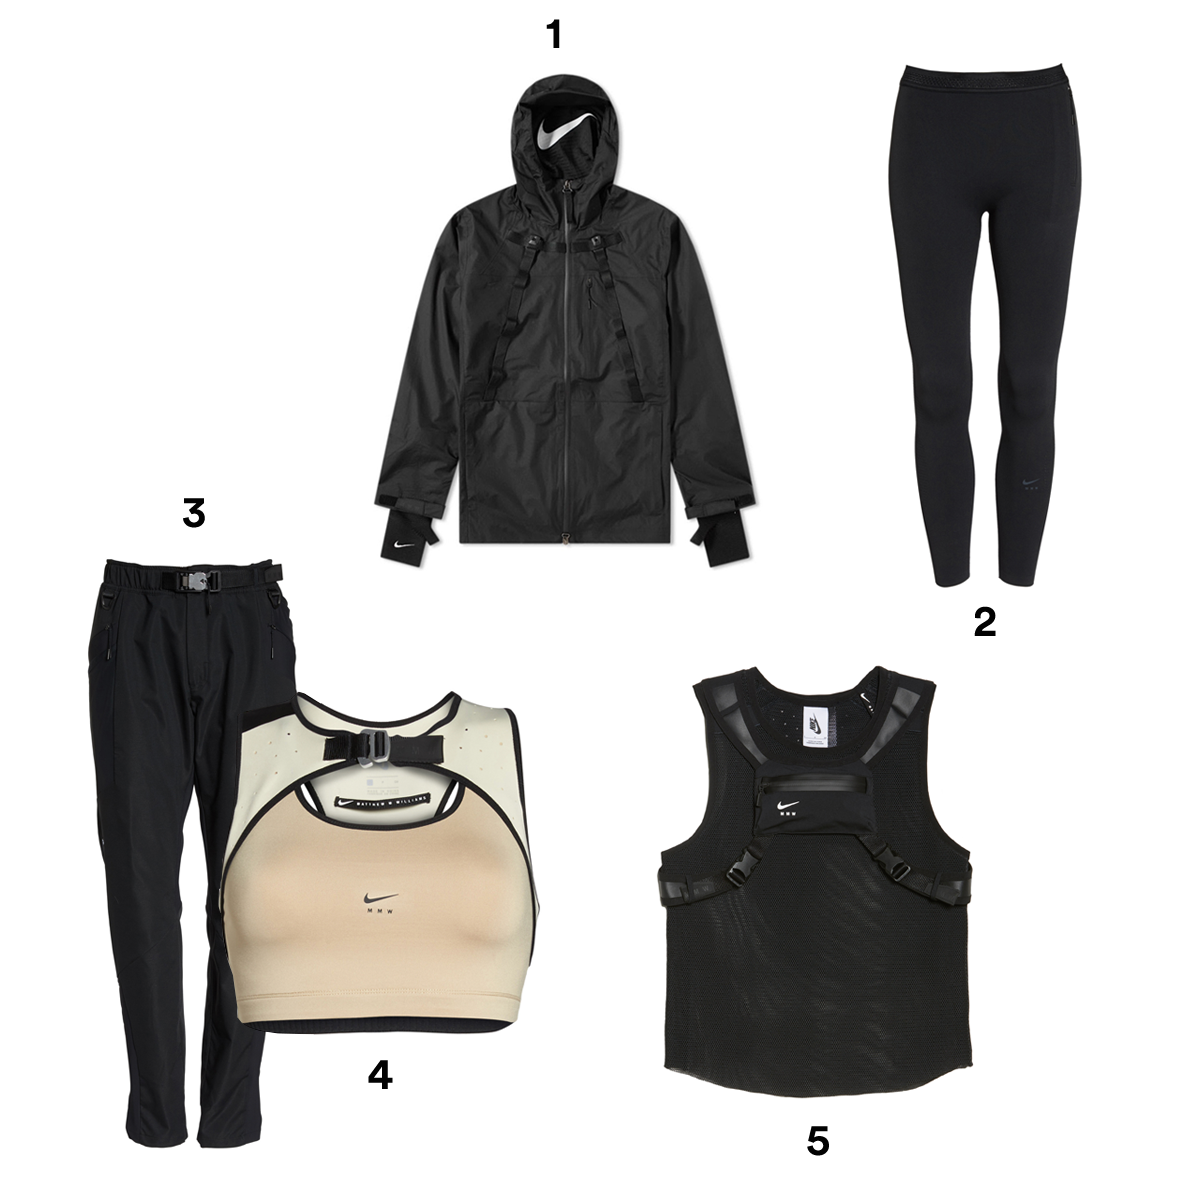 1) NIKE X MATTHEW WILLIAMS Black Full Zip Hoodie, available at Nordstrom. 2) NIKE X MATTHEW WILLIAMS Black Tight Leggings, available at Nordstrom. 3) NIKE X MATTHEW WILLIAMS Black Lounge Pants, available at Nordstrom. 4) NIKE X MATTHEW WILLIAMS Medium Support Dri-Fit Sports Bra, available at Nordstrom. 5) NIKE X MATTHEW WILLIAMS Black Tank, available at Nordstrom.